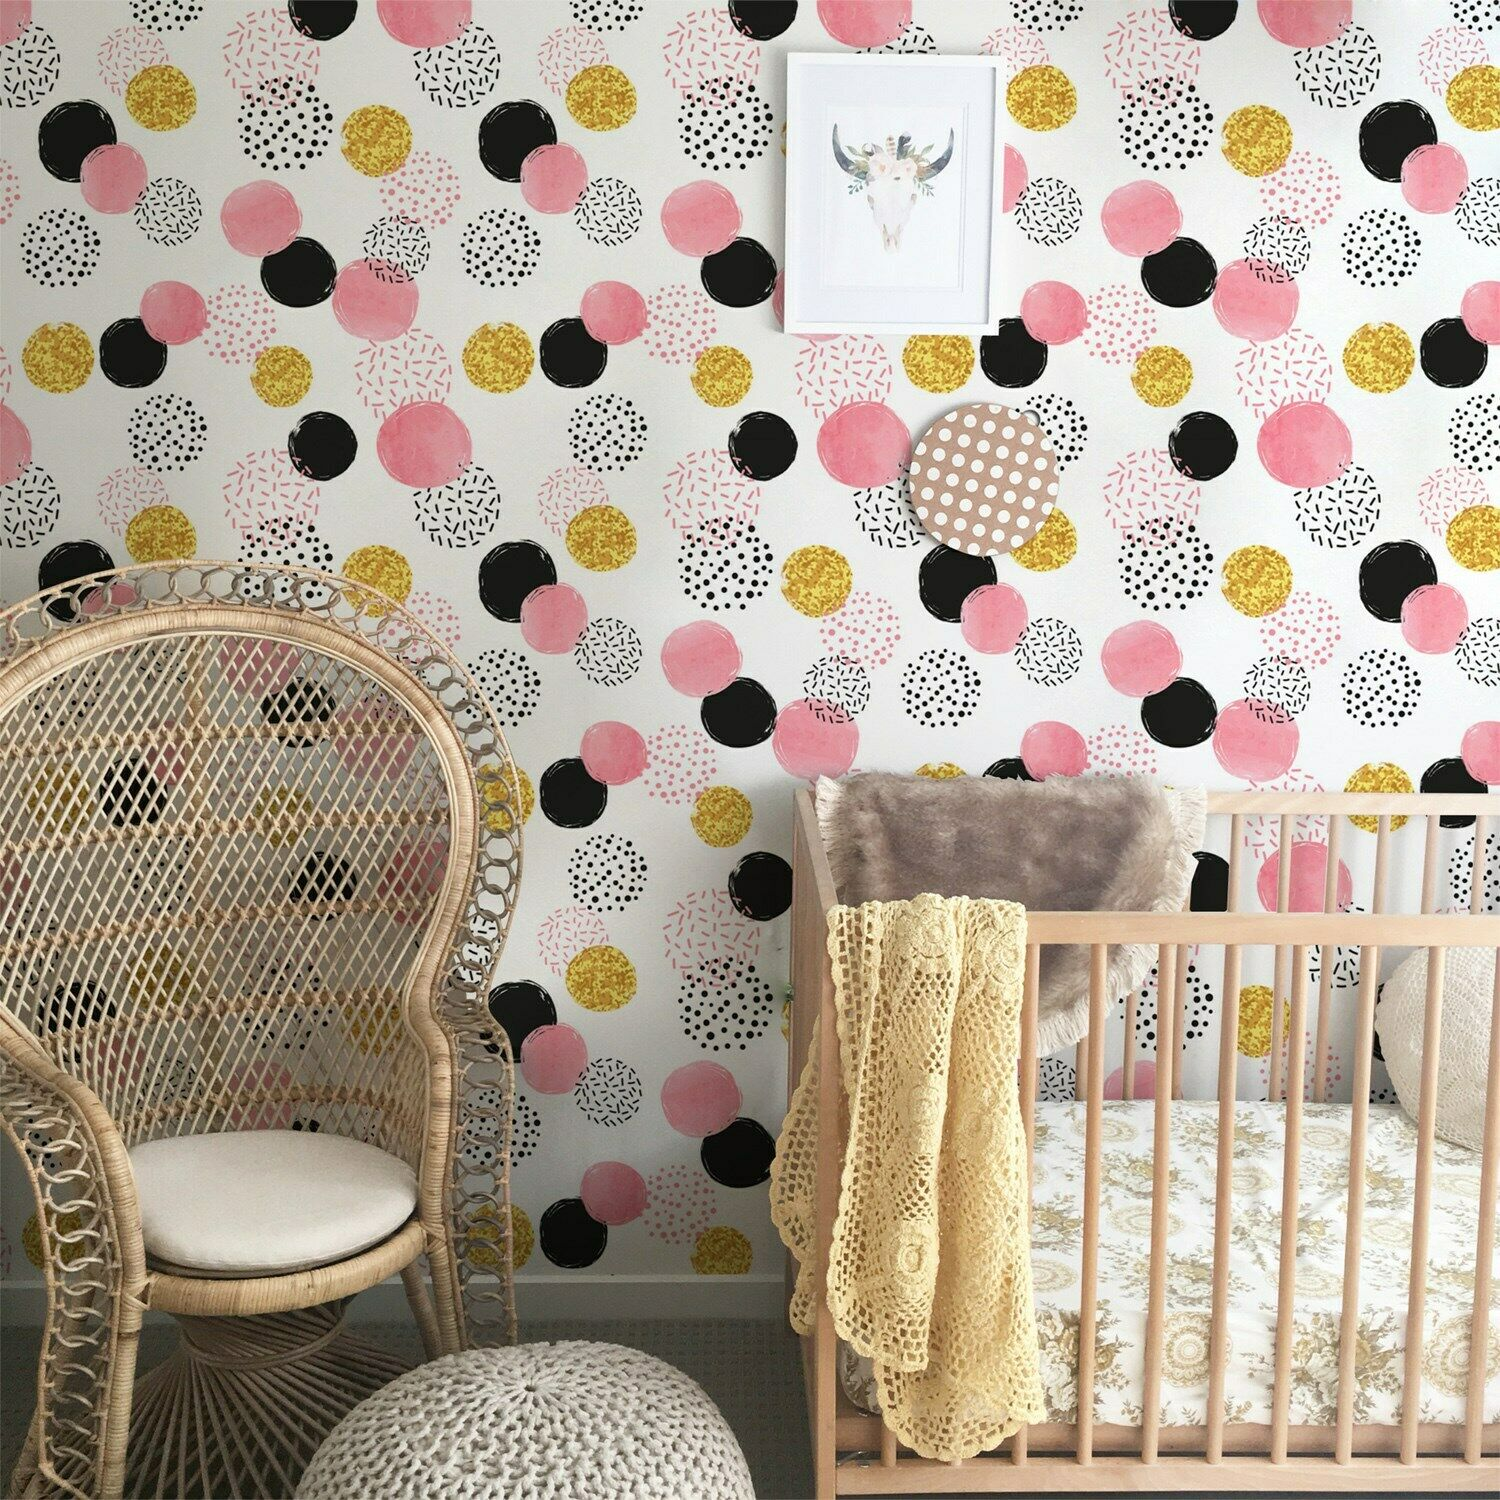 Cute Dots Non-Woven wallpaper Simple wall mural Geometric Home decor Roll